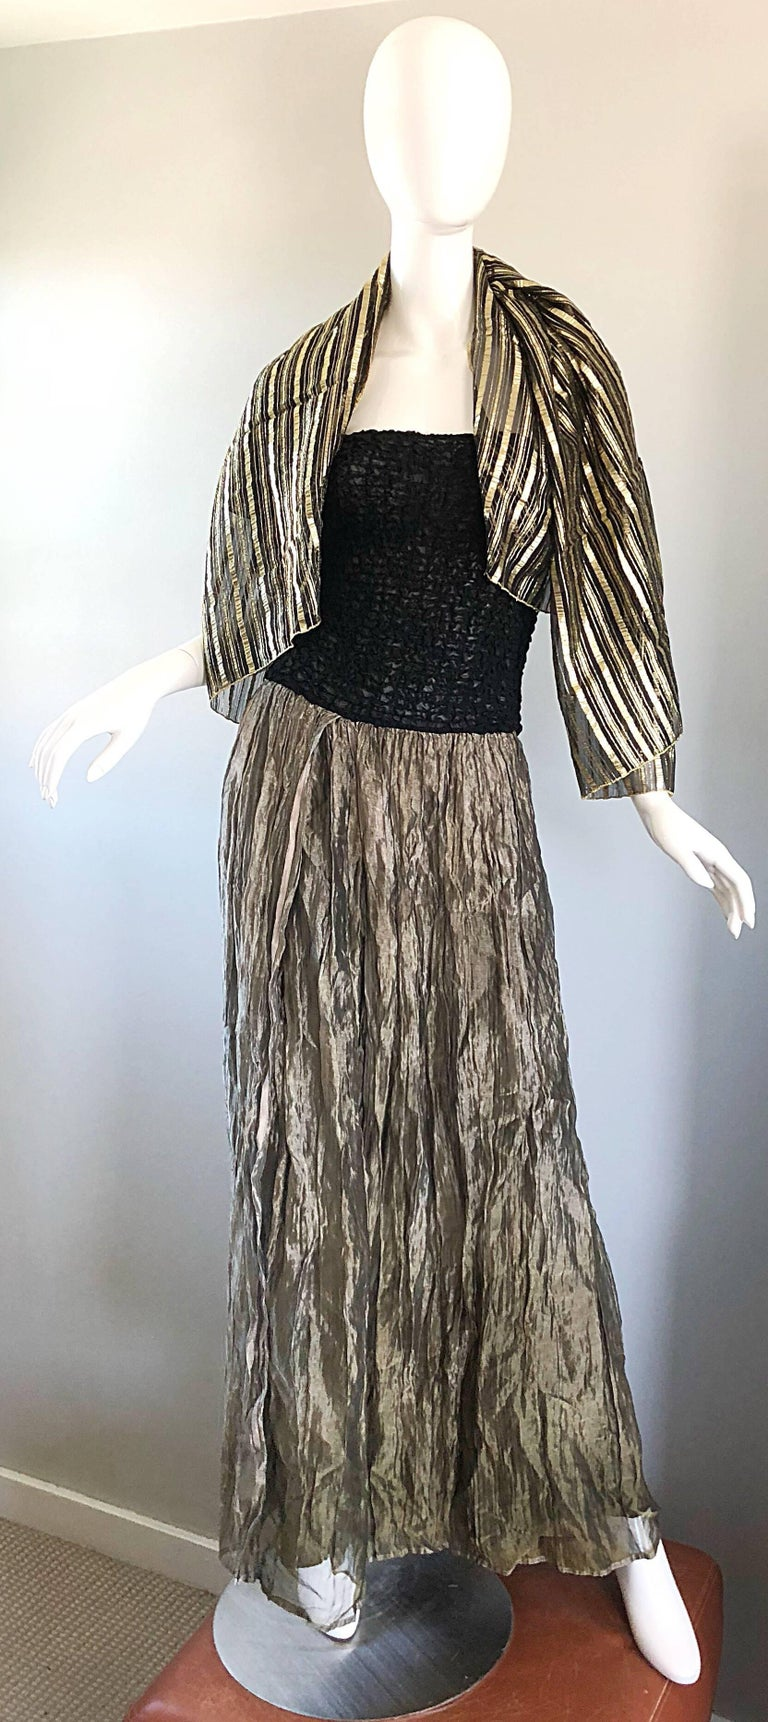 Women's Vintage Morgane Le Fay 1990s Black + Gold Metallic Ombre 90s Evening Gown Dress